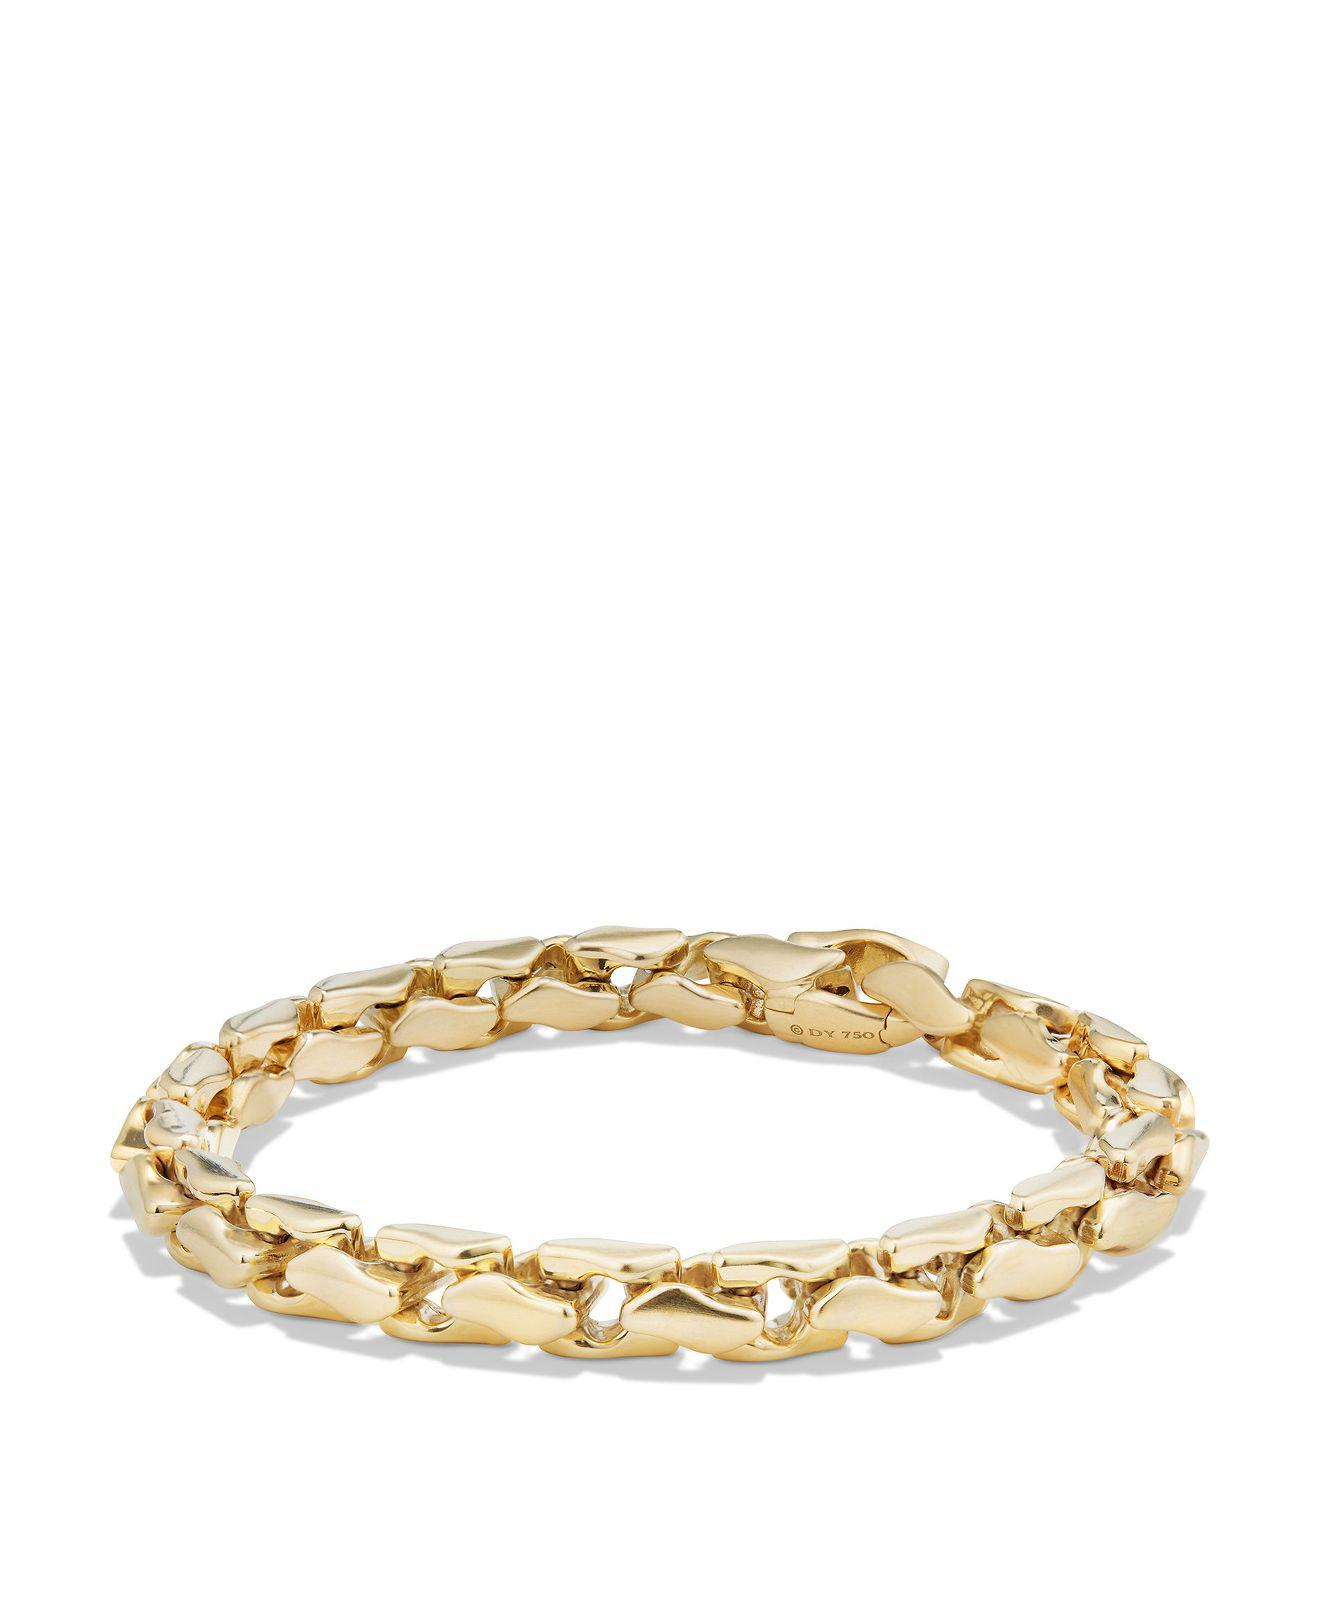 agra baku gold bracelet buy affordable piace price large mi shop in az en